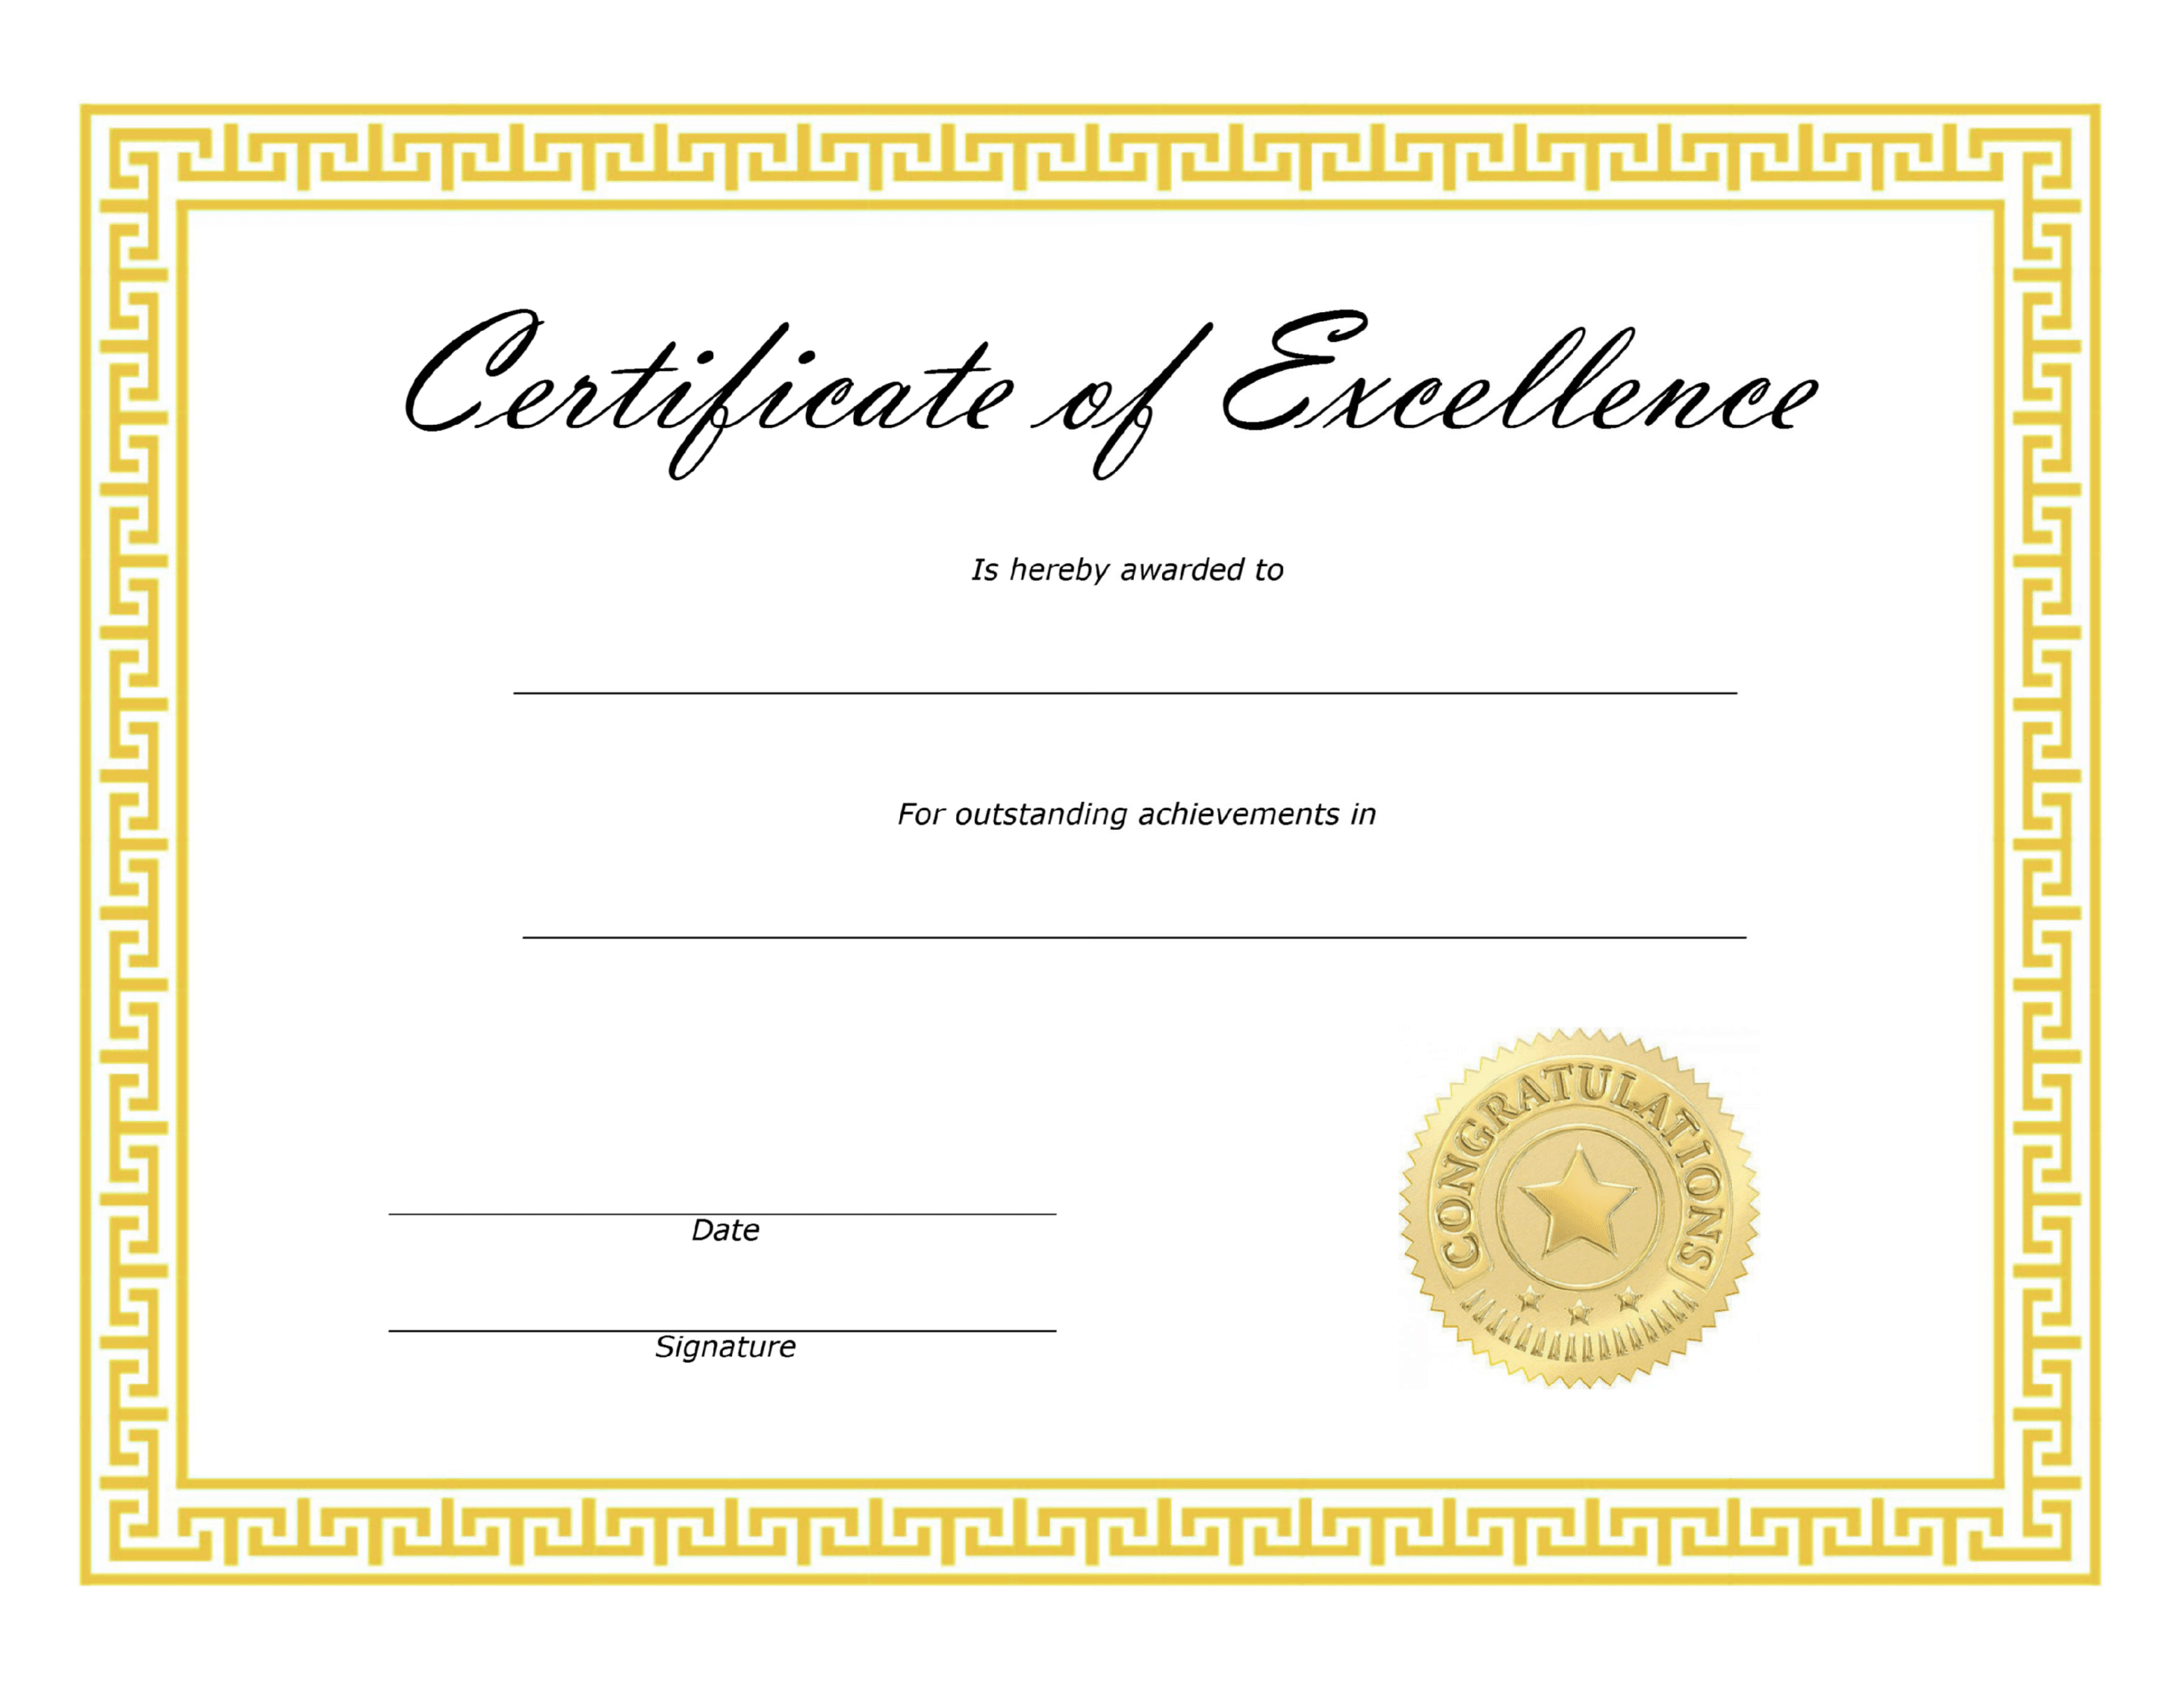 ❤️ Free Sample Certificate Of Excellence Templates❤️ With Certificate Of Excellence Template Free Download